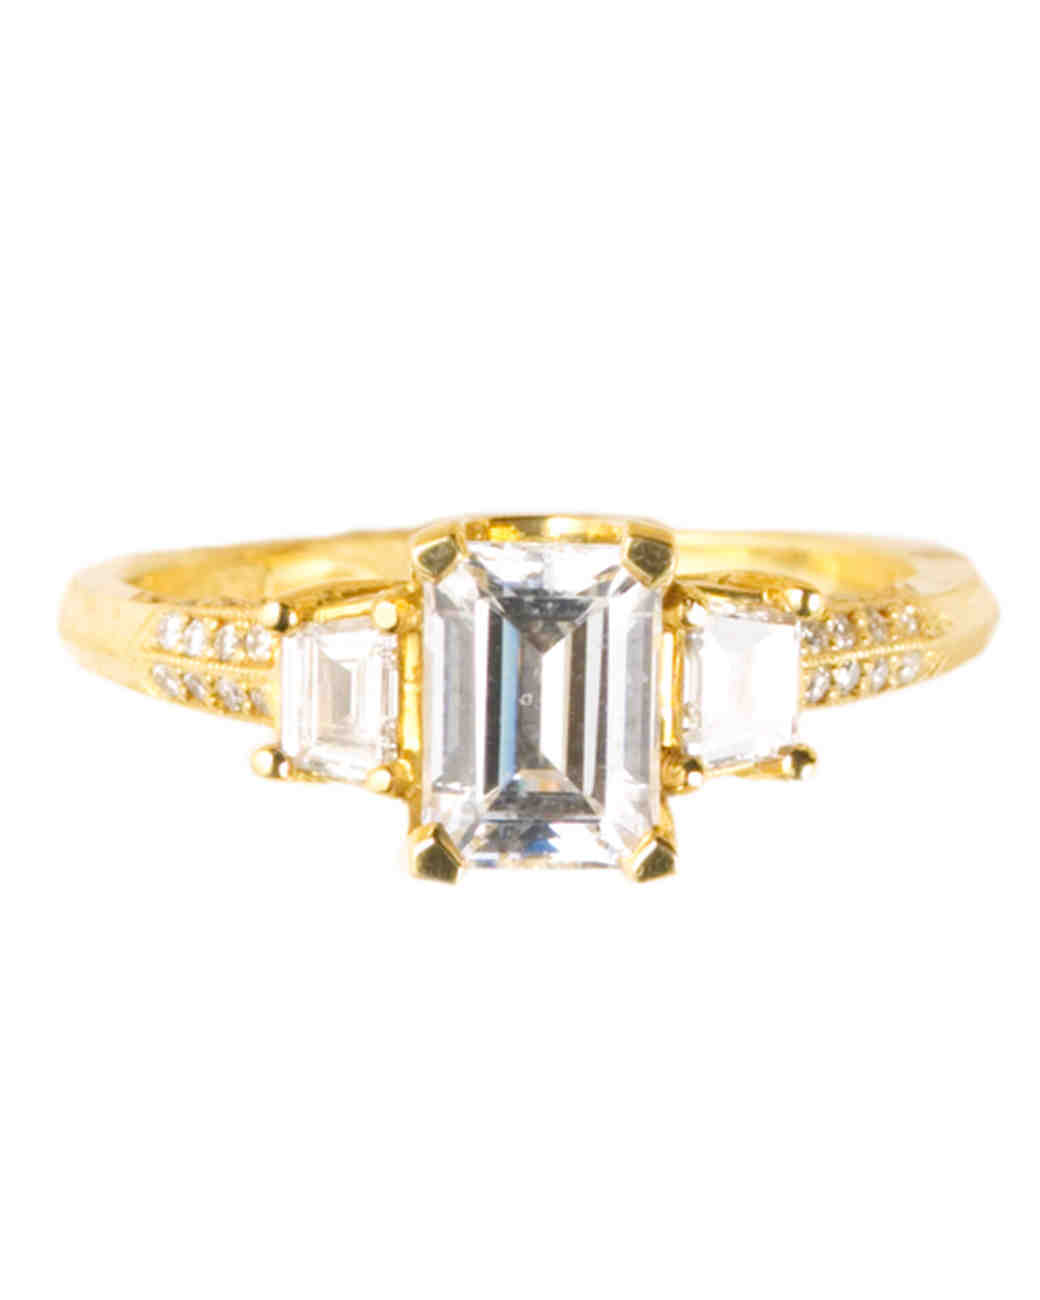 msw_sum10_yellow_ring3_tacori.jpg